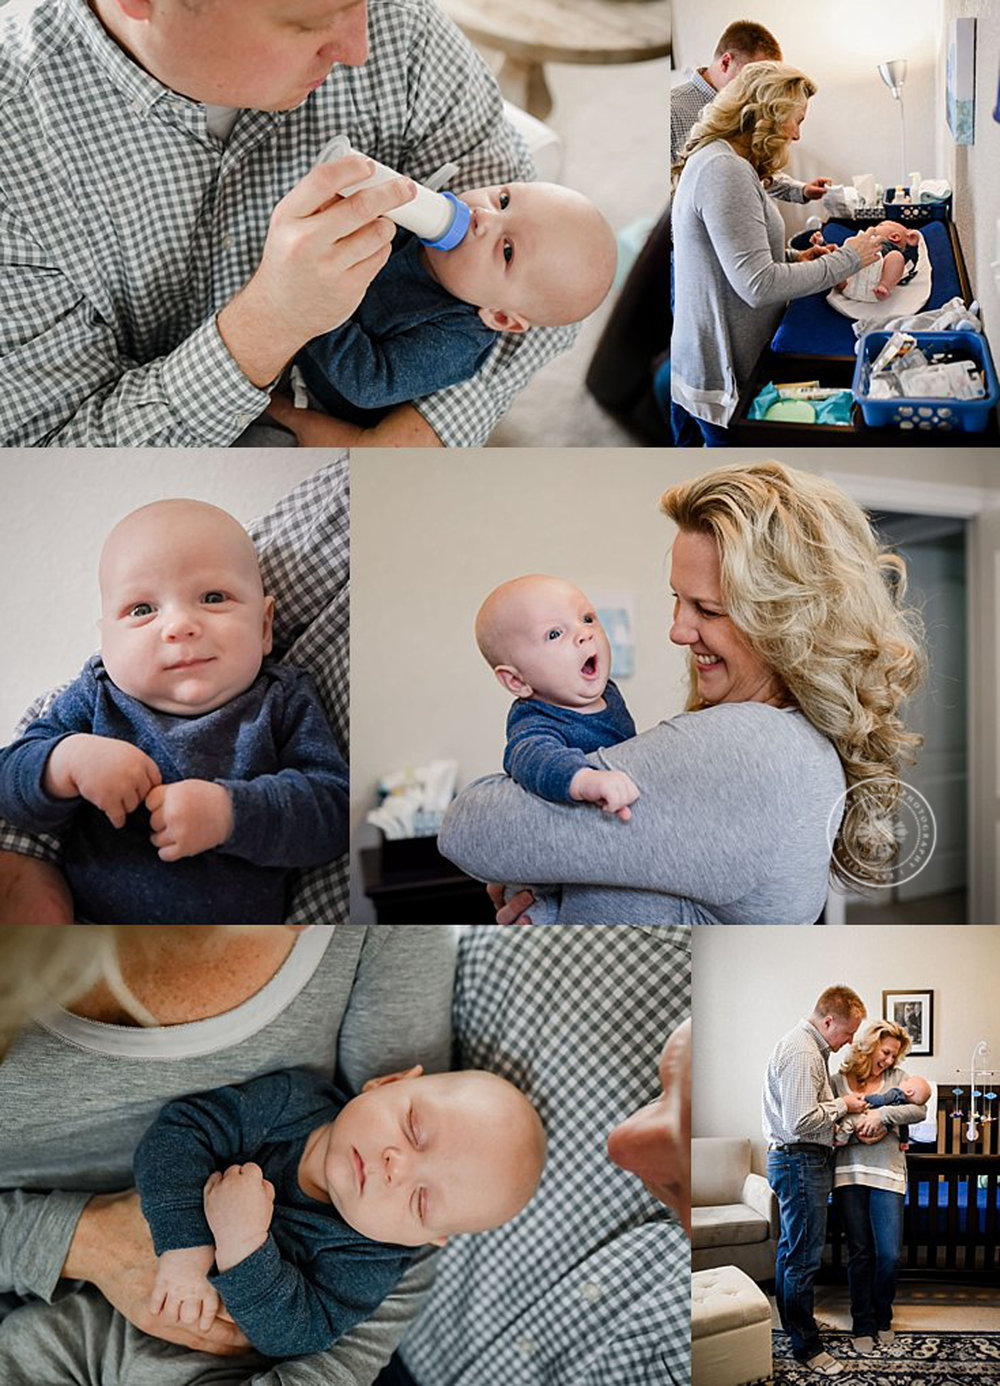 newborn-family-session-at-home-chesapeake-norfolk-newborn-photographer-melissa-bliss-photography-baby-pics